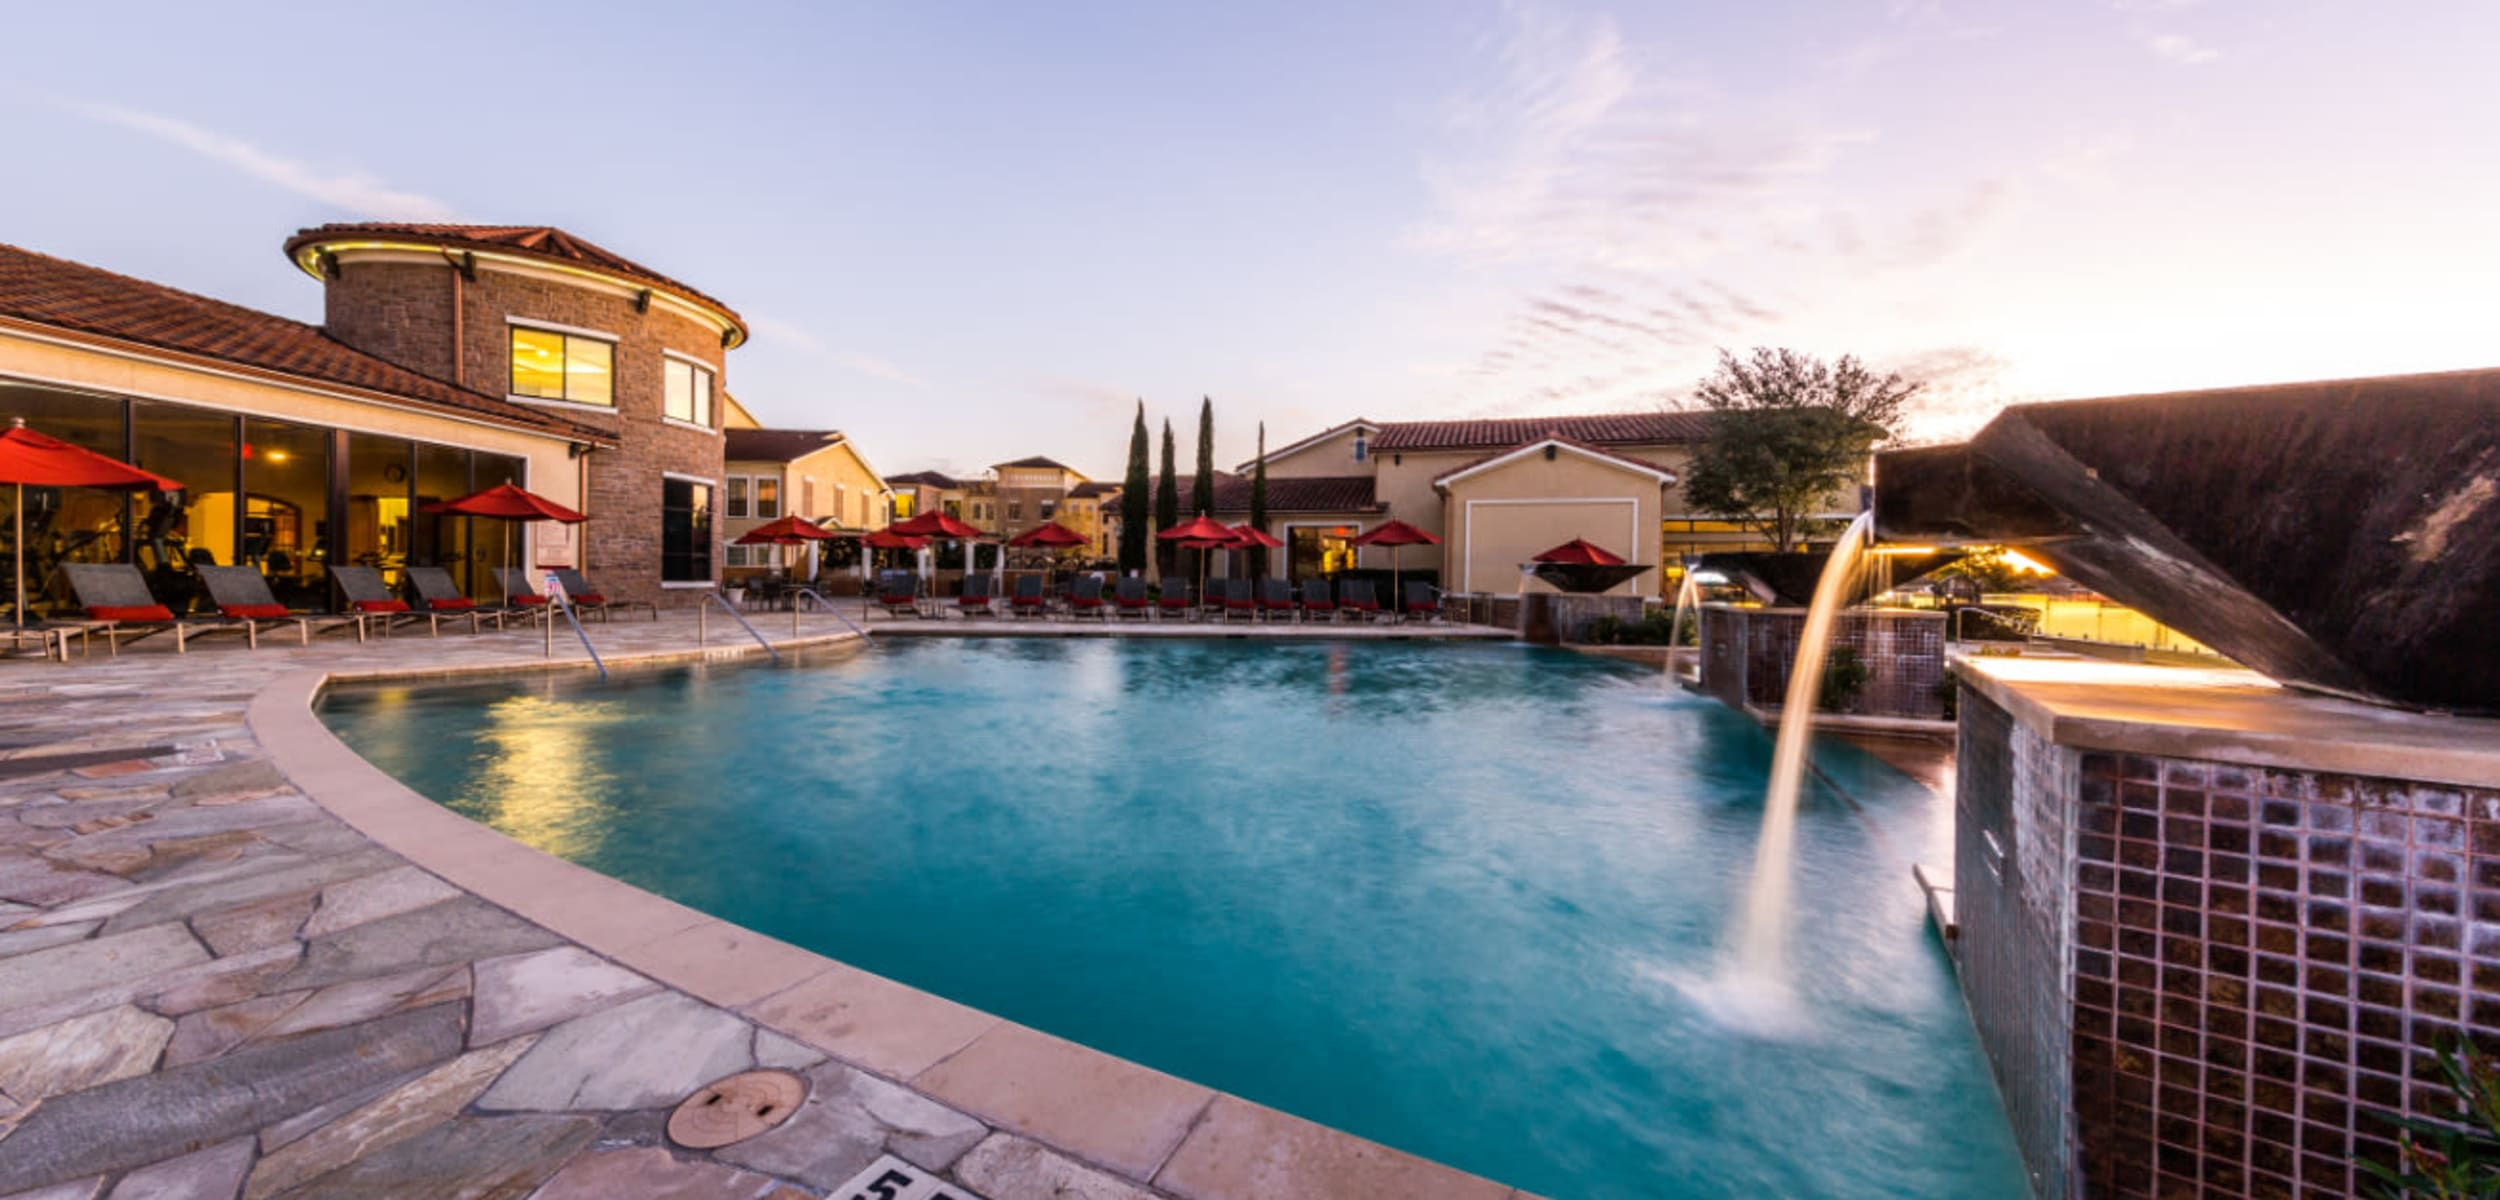 Sparkling pool with waterfall feature at Marquis at the Reserve in Katy Texas,